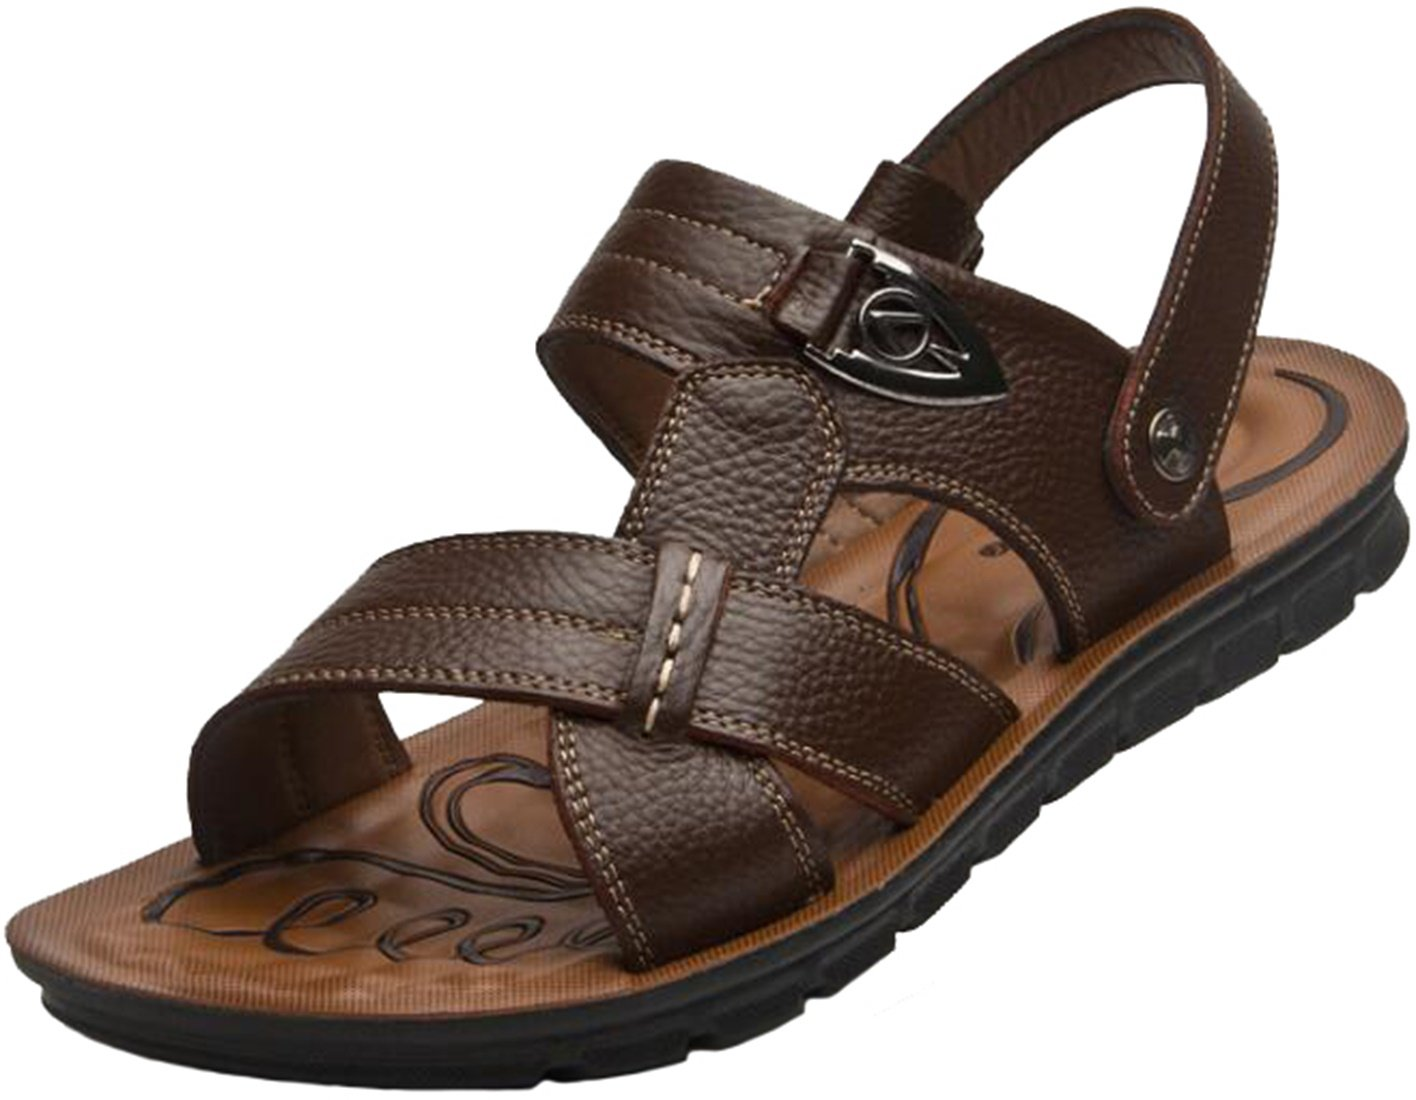 PPXID Men's Leather Flat Sandbeach Sandals Casual Slipper(Big Size Available)-Brown 15 US Size